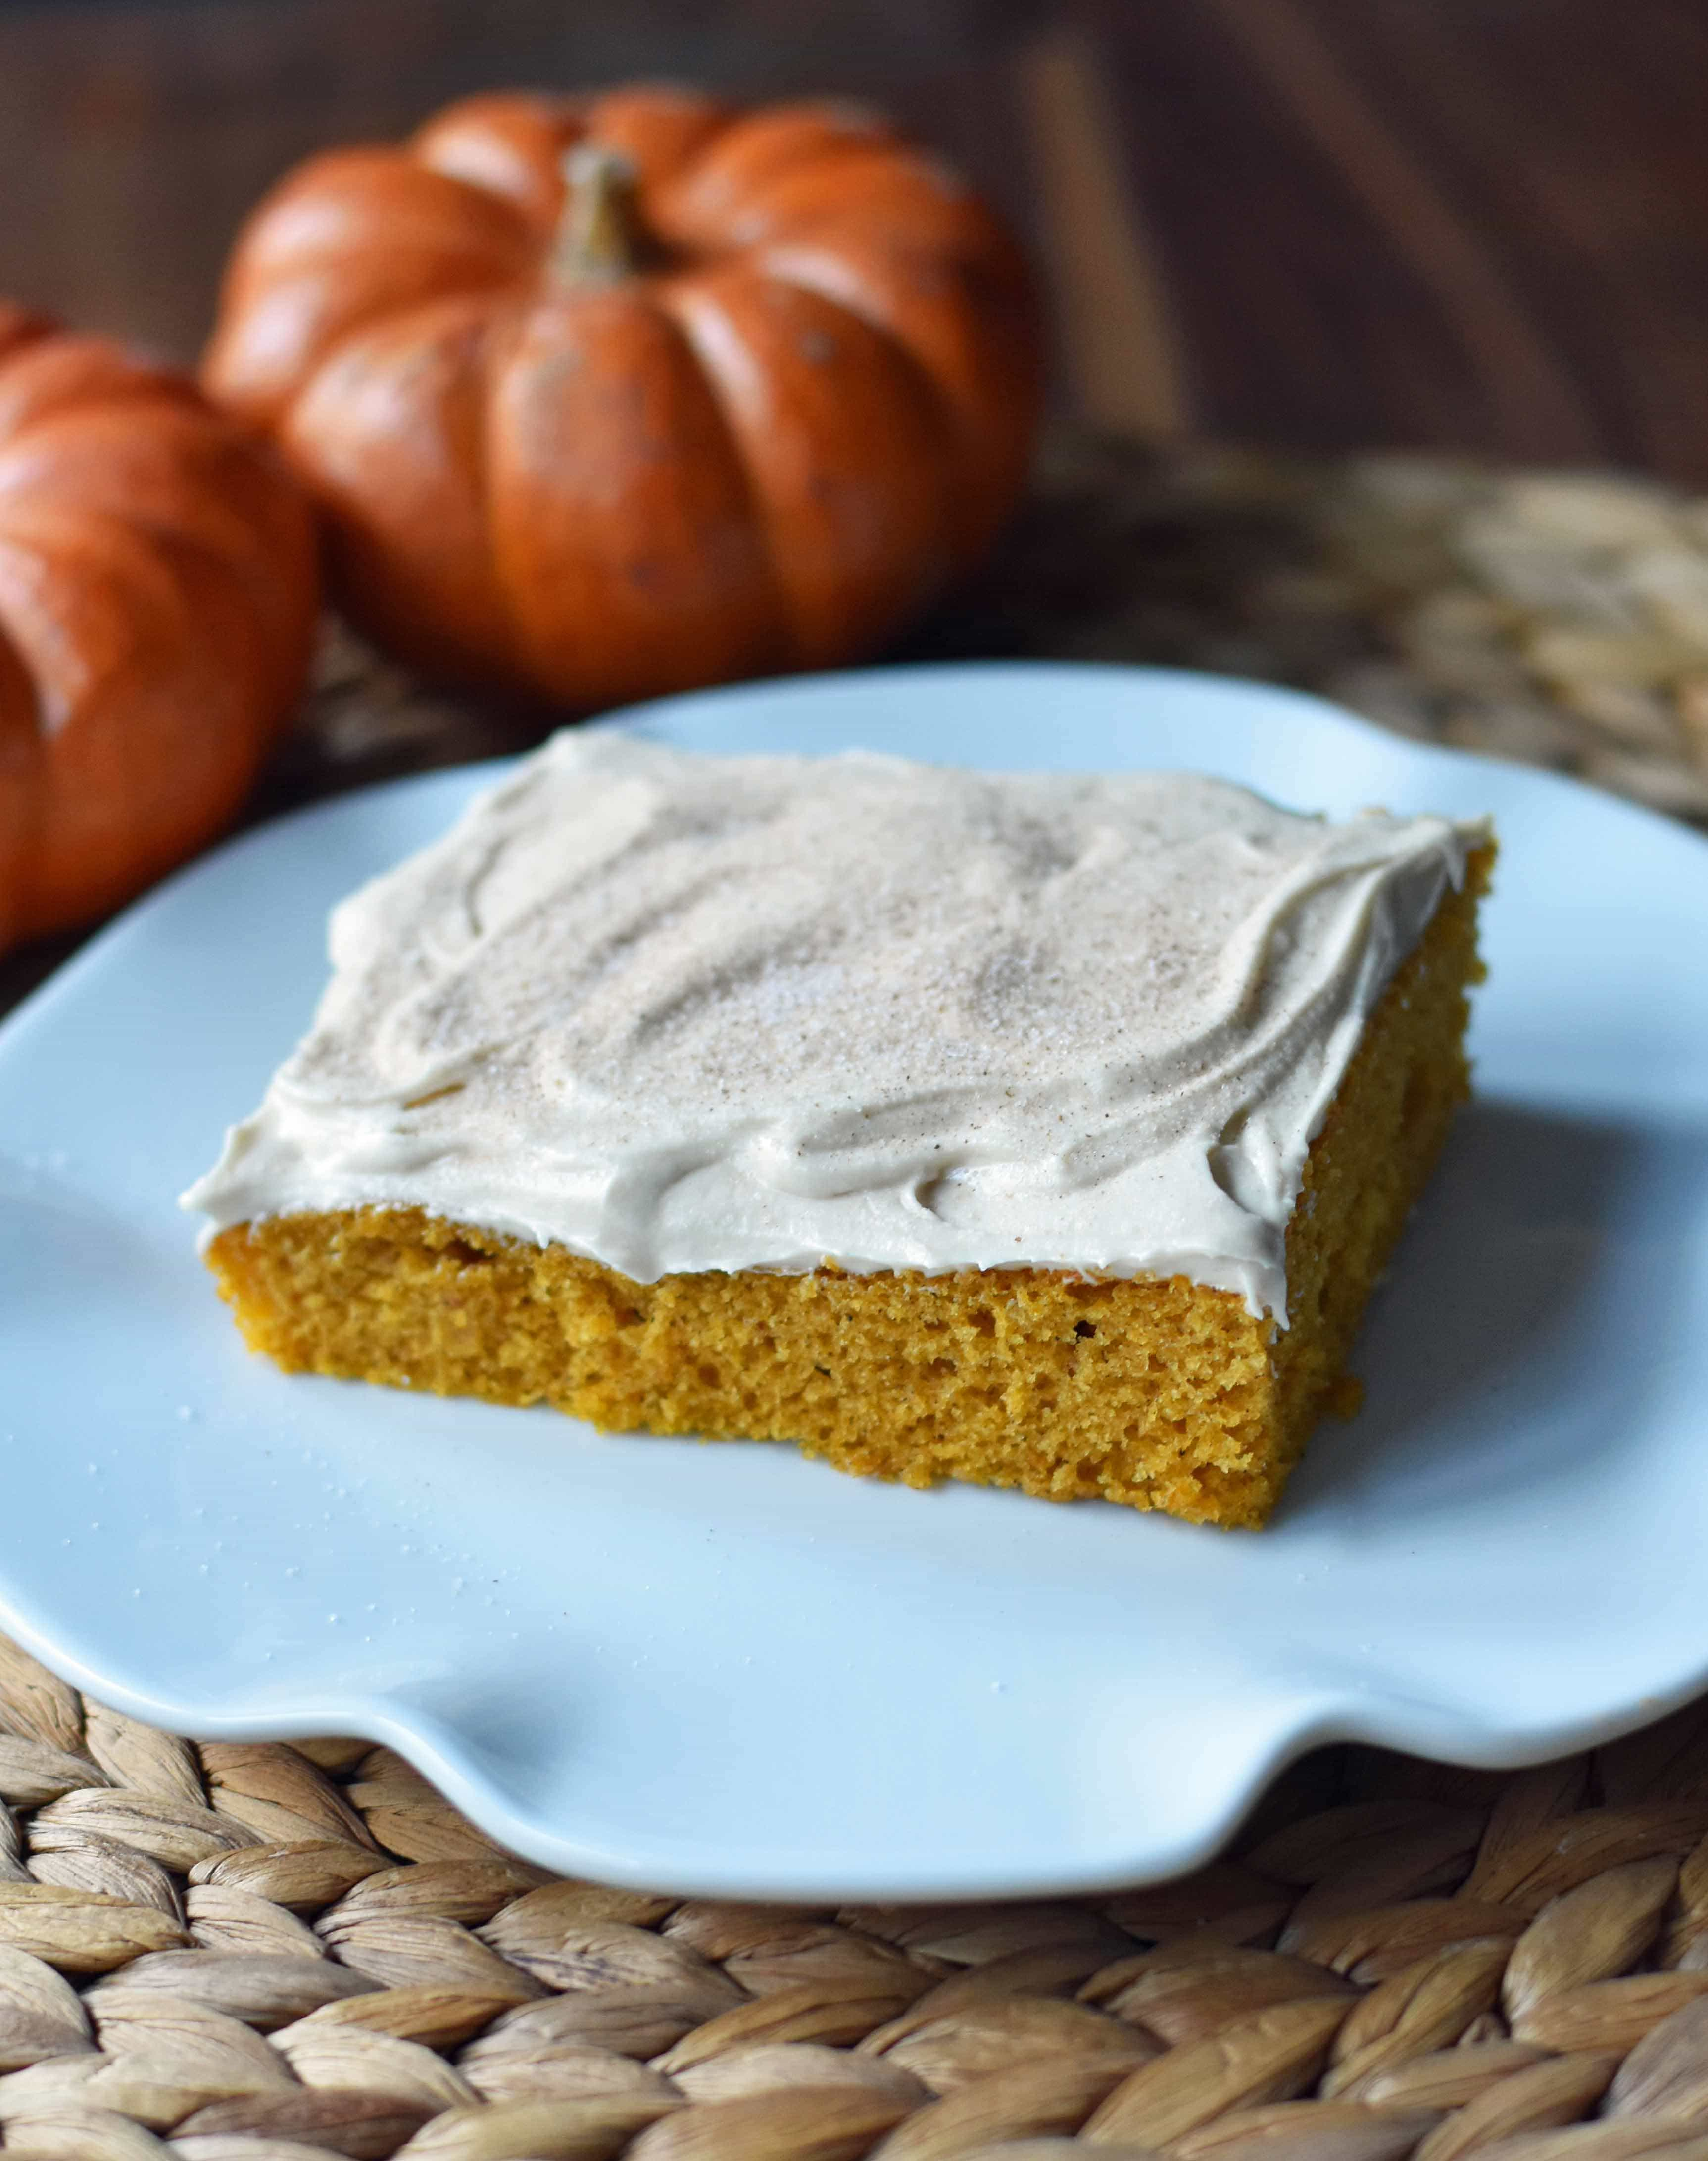 Pumpkin Sheet Cake with Cream Cheese Frosting. A pumpkin spice cake with a creamy homemade cream cheese frosting. A super simple, easy cake recipe! www.modernhoney.com